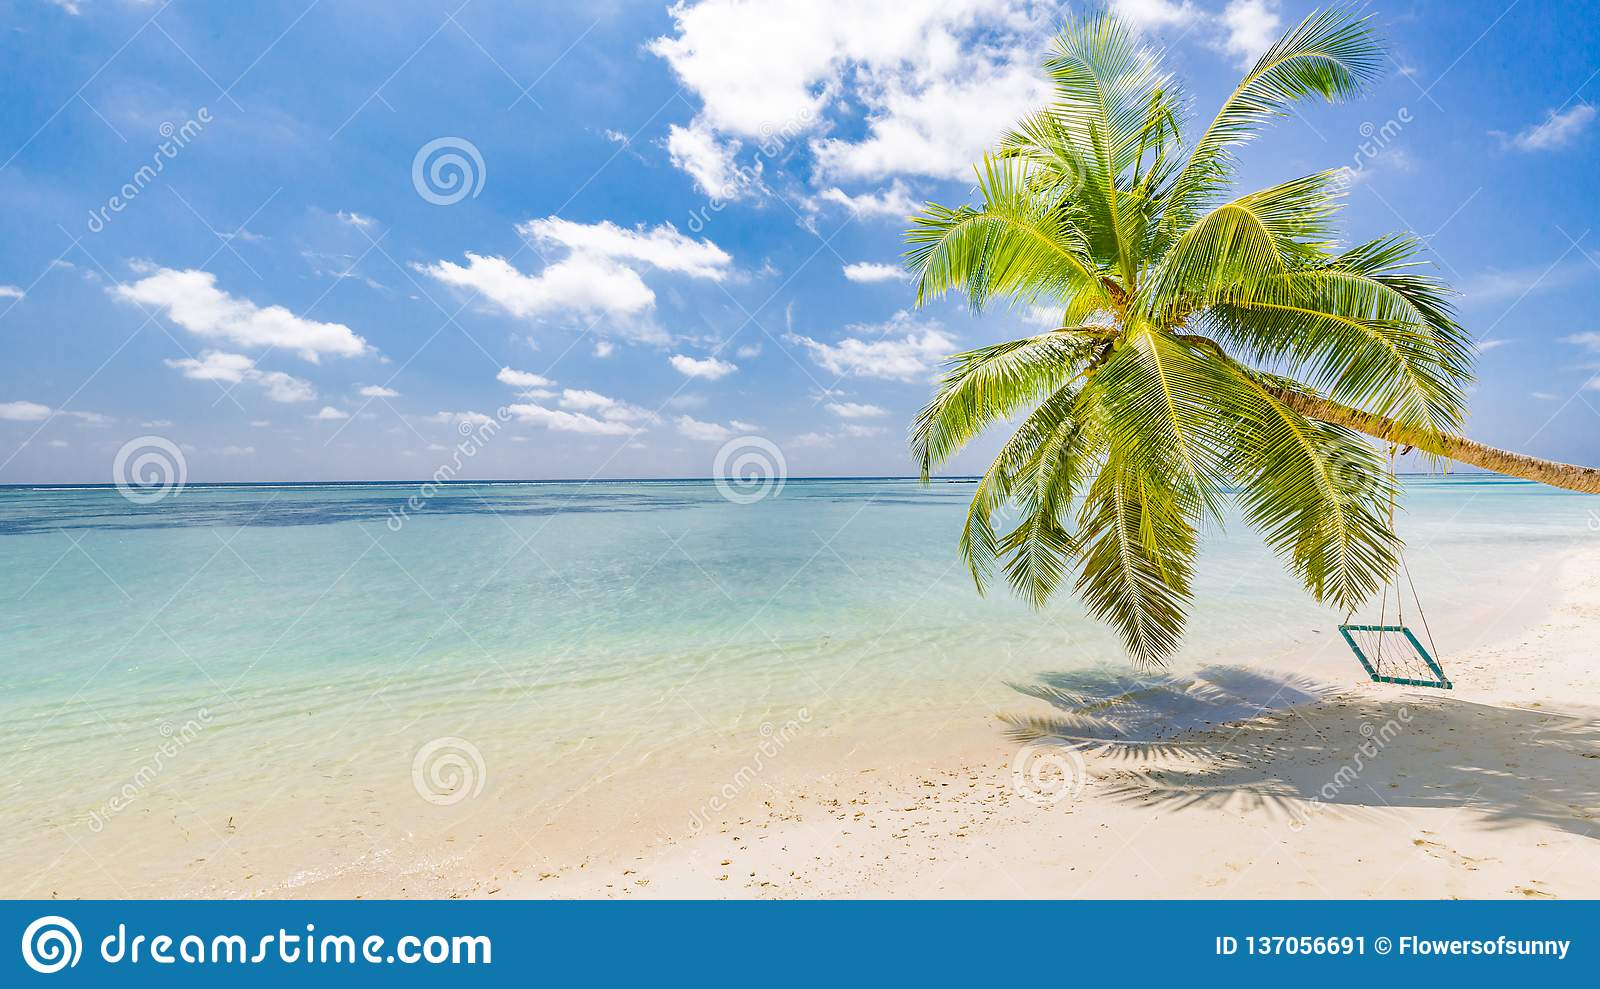 Amazing tropical beach banner. Palm tree with swing, summer day, tropical landscape. Vacation and holiday beach concept